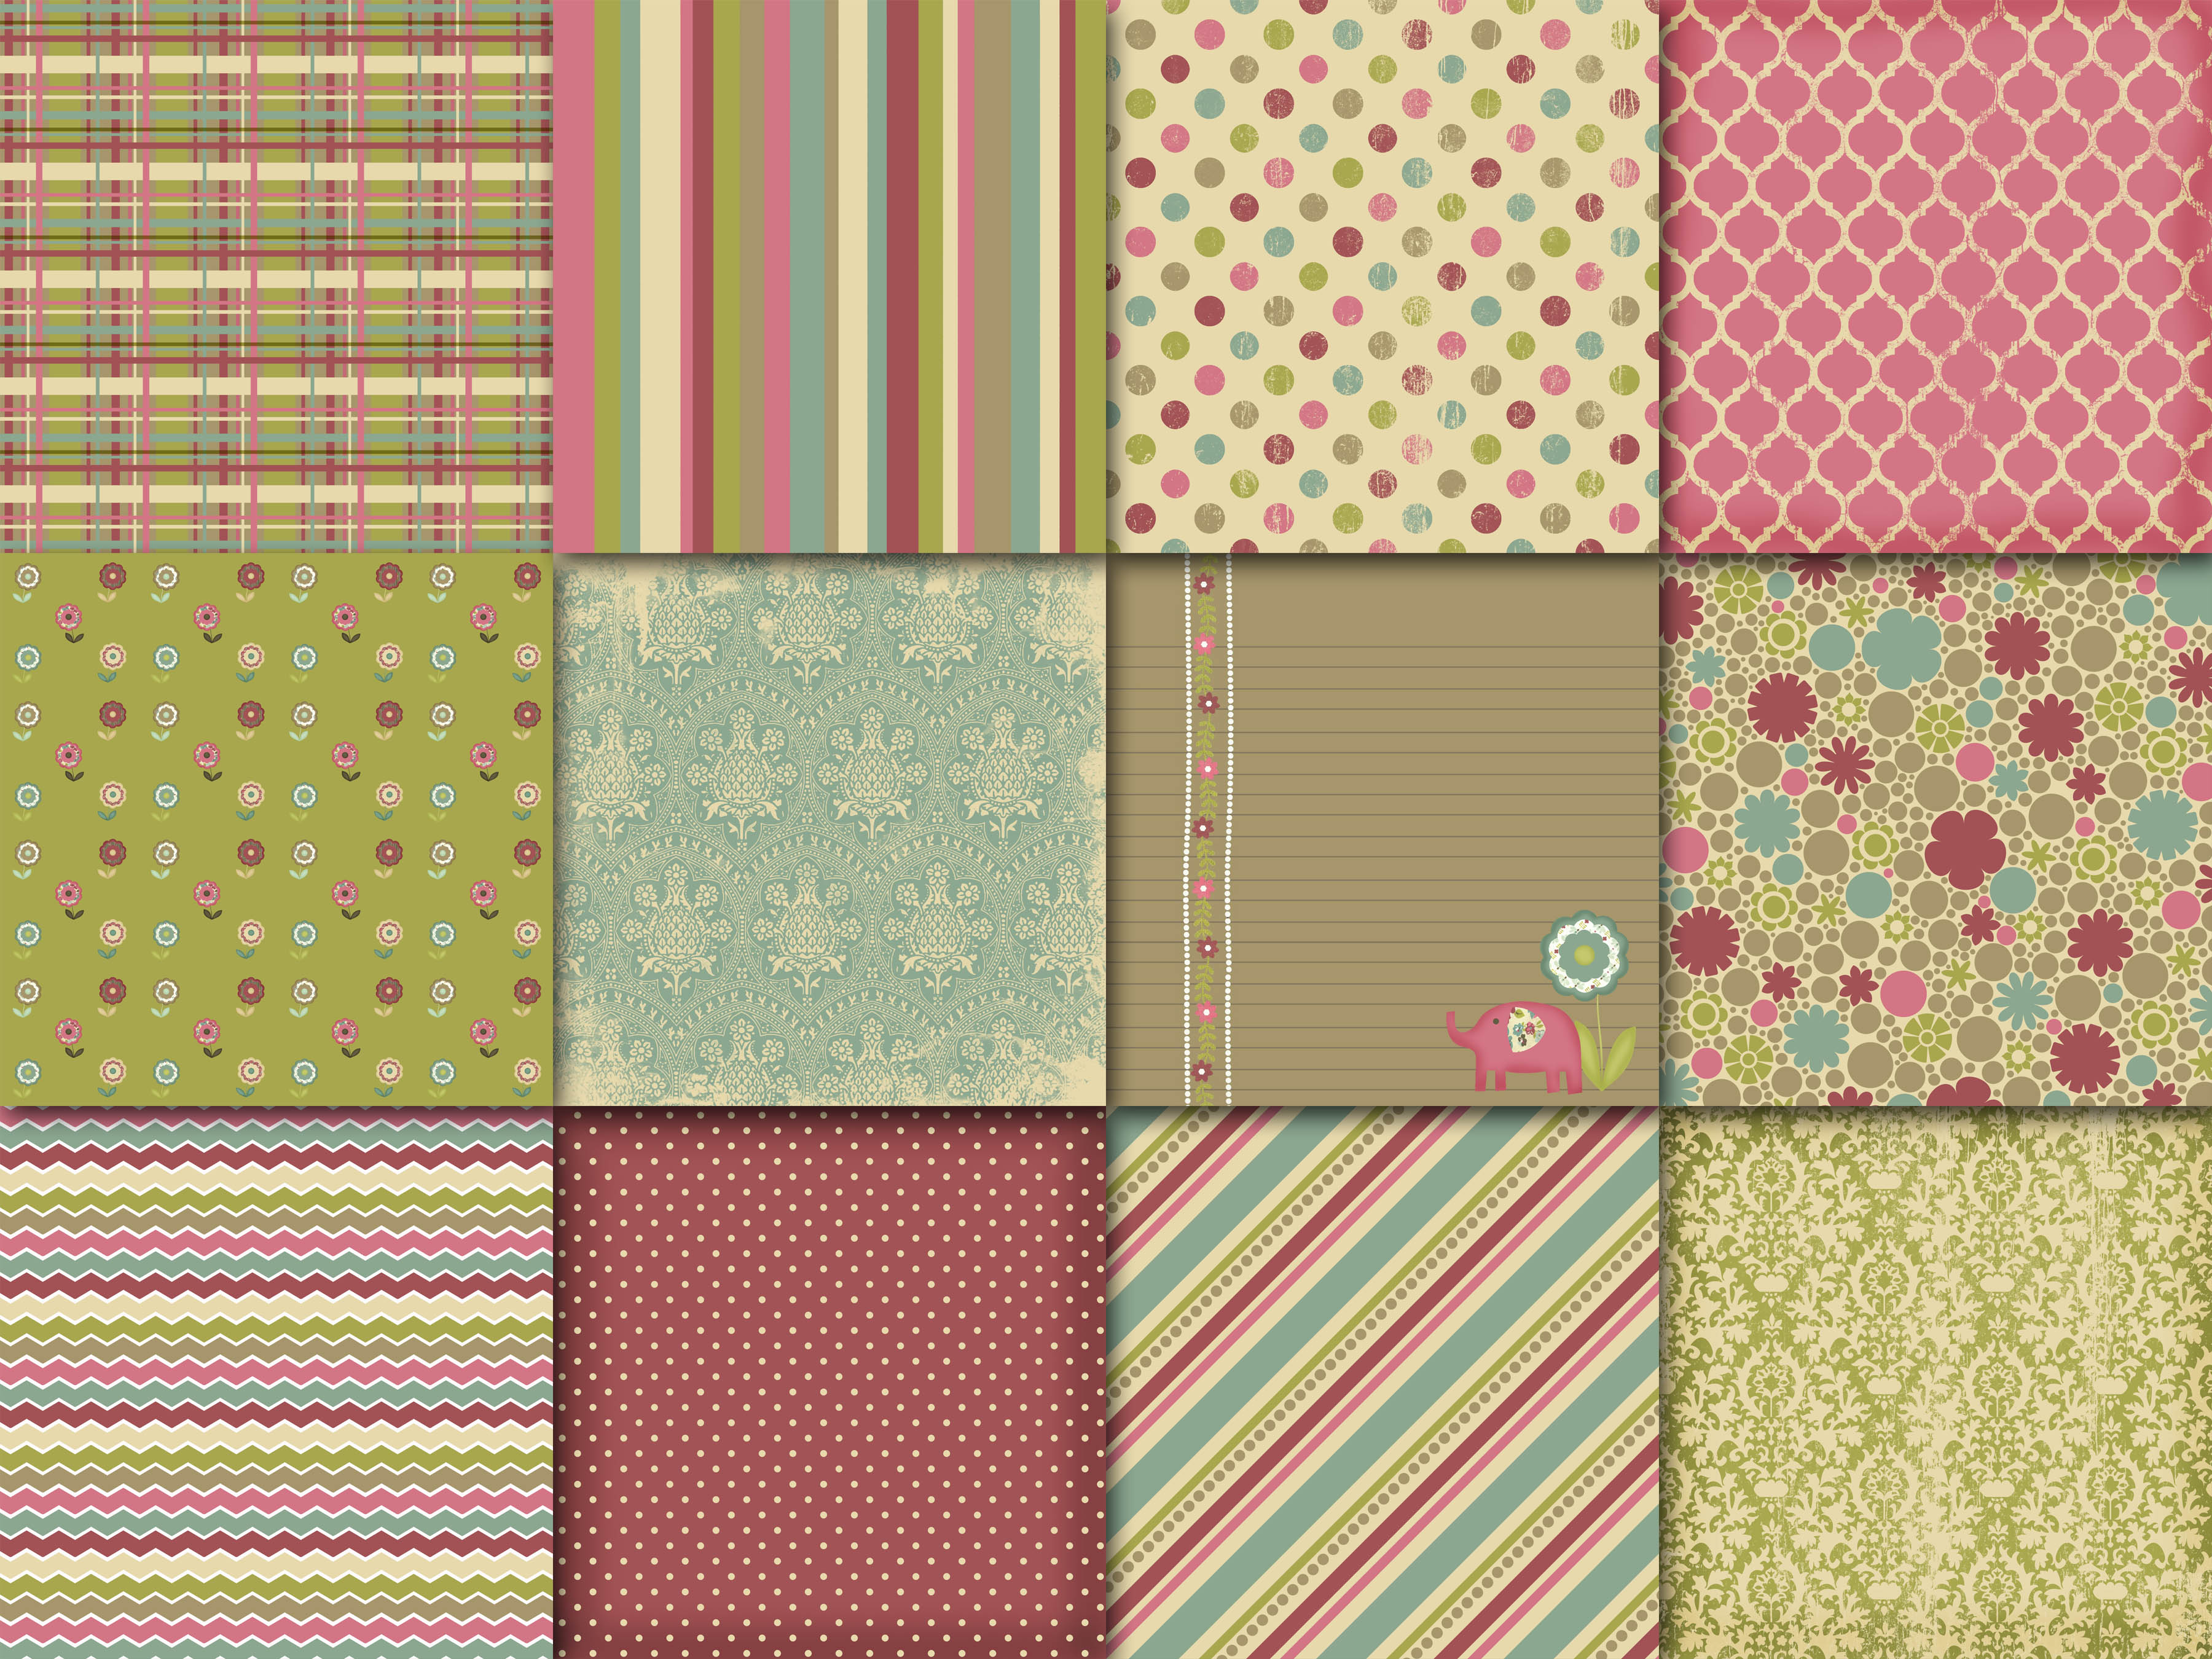 Serendipity Digital Papers Graphic By oldmarketdesigns Image 2